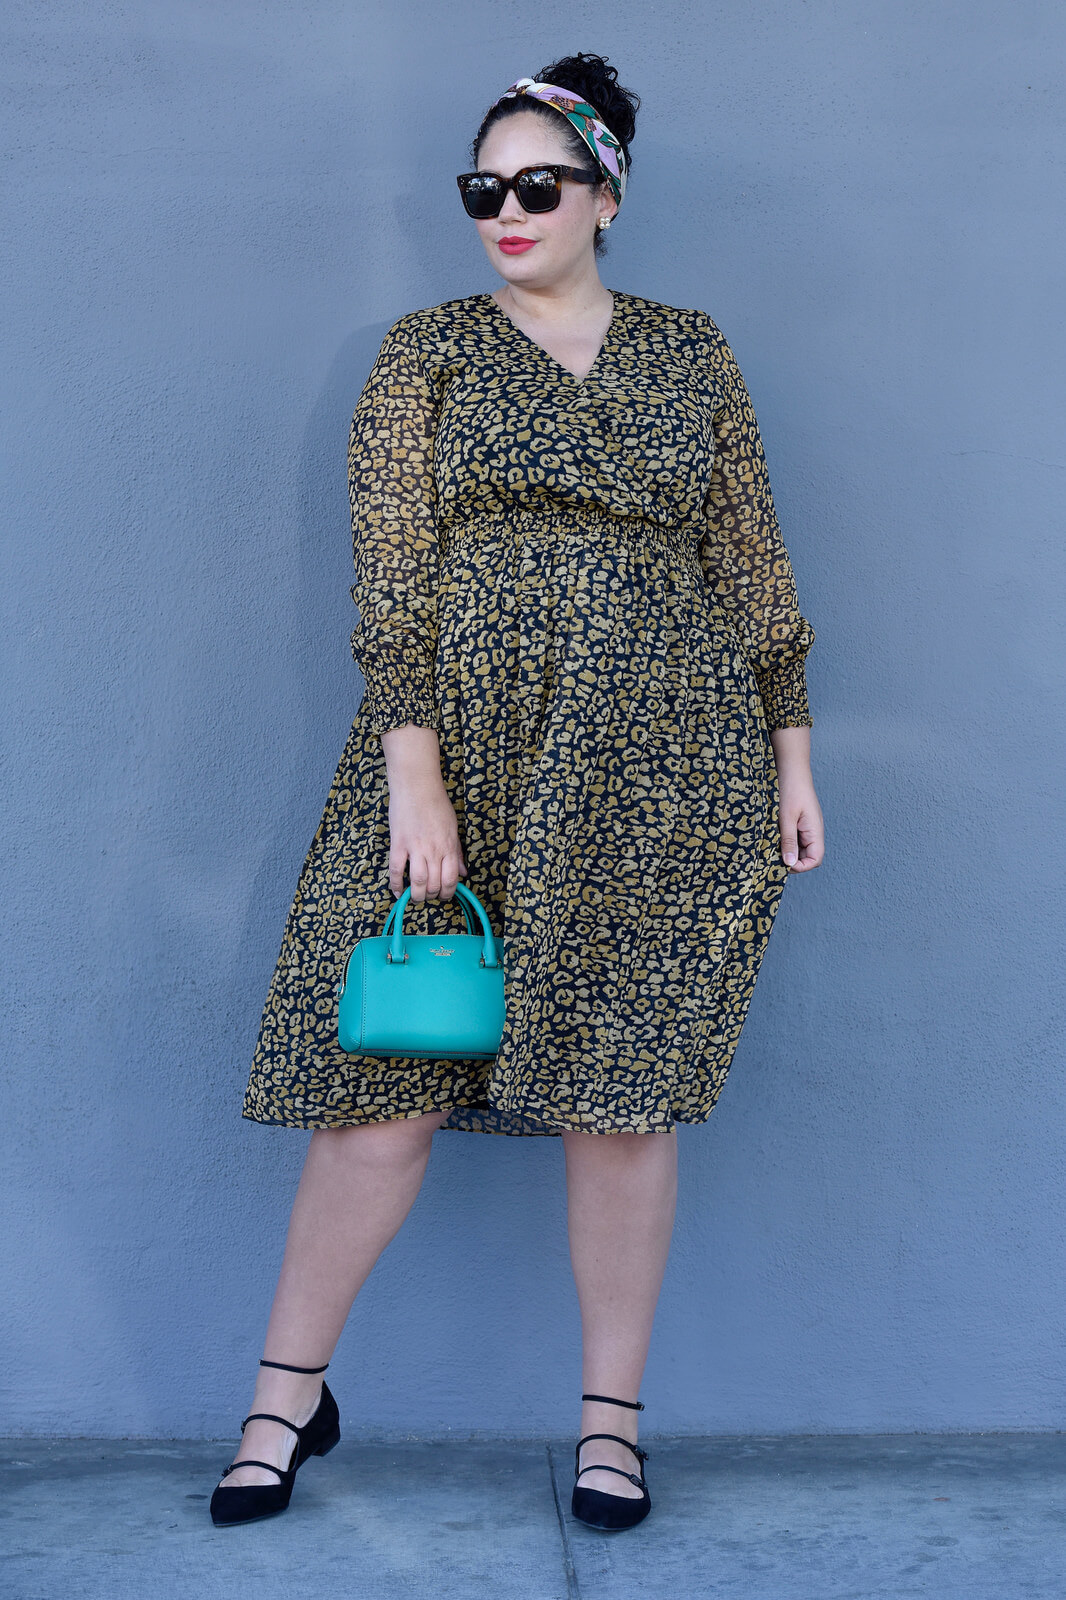 Featuring Leapord Print Long Sleave Dress By Whowhatwear, Bag By Kate Spade, Sunglasses By Celine, Shoes By Stuart Weitzman And A Headband via @GirlWithCurves